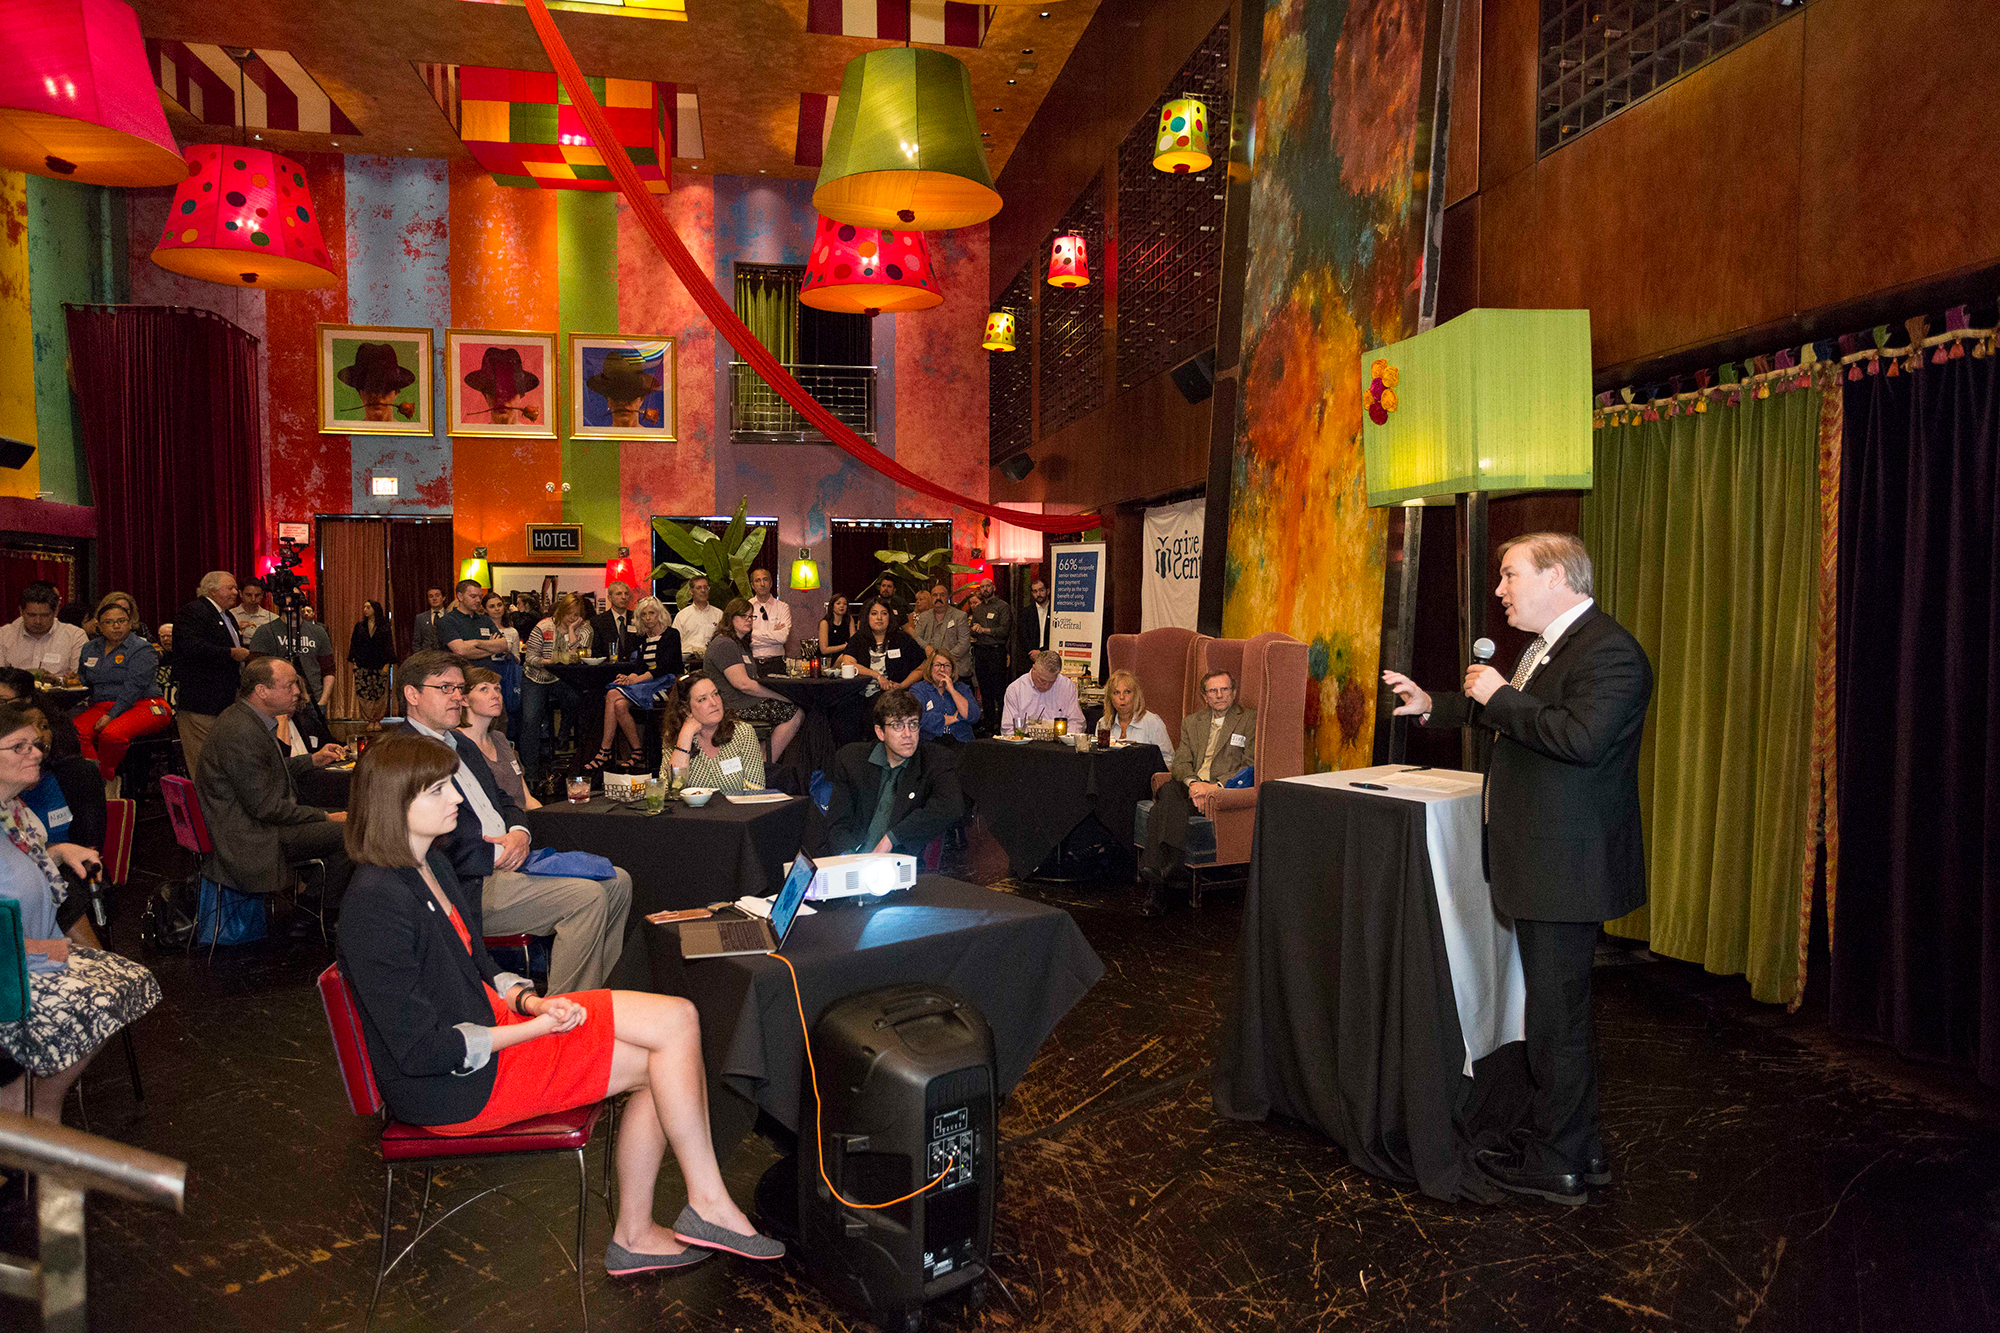 May, 2018, in Carnivale Restaurant, on Fulton Street in Chicago. In this image, you see Patrick explaining the benefits of the new Give Central program, provided by the Coleman Group.